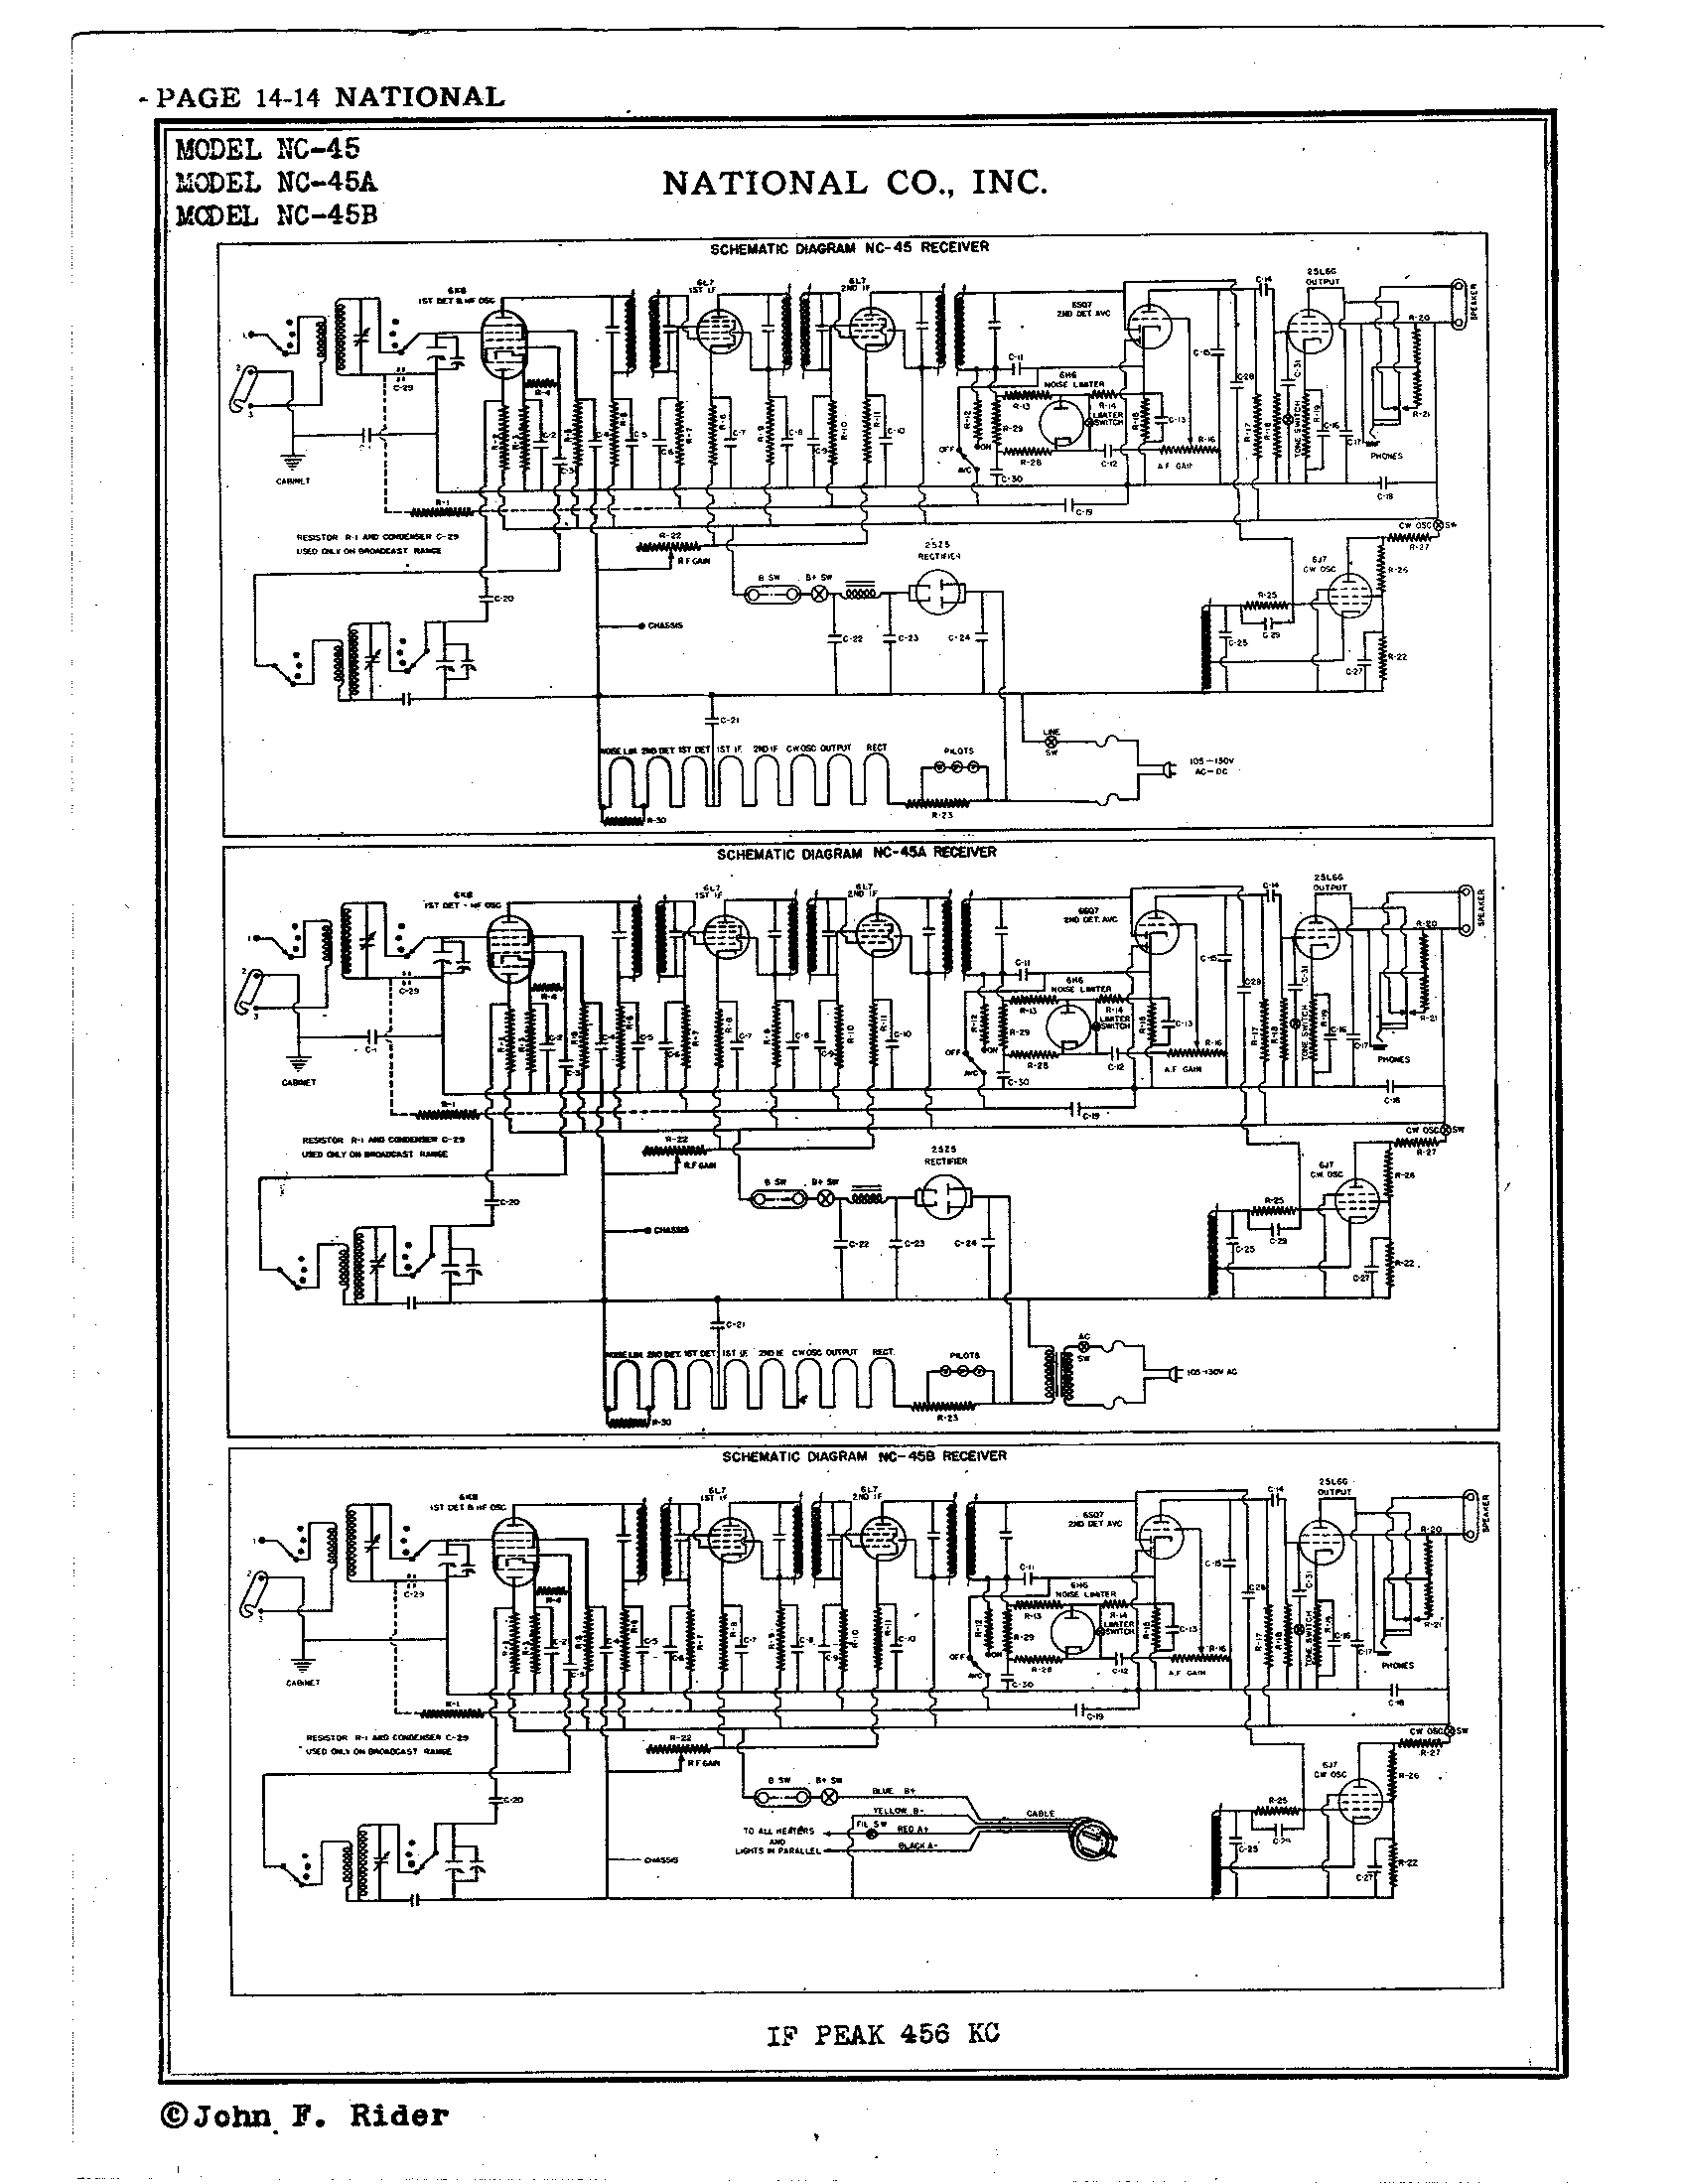 National Co Inc Nc 45 Antique Electronic Supply Circuit Diagram Page 2 6261 Kb Rider Manual Volume 14